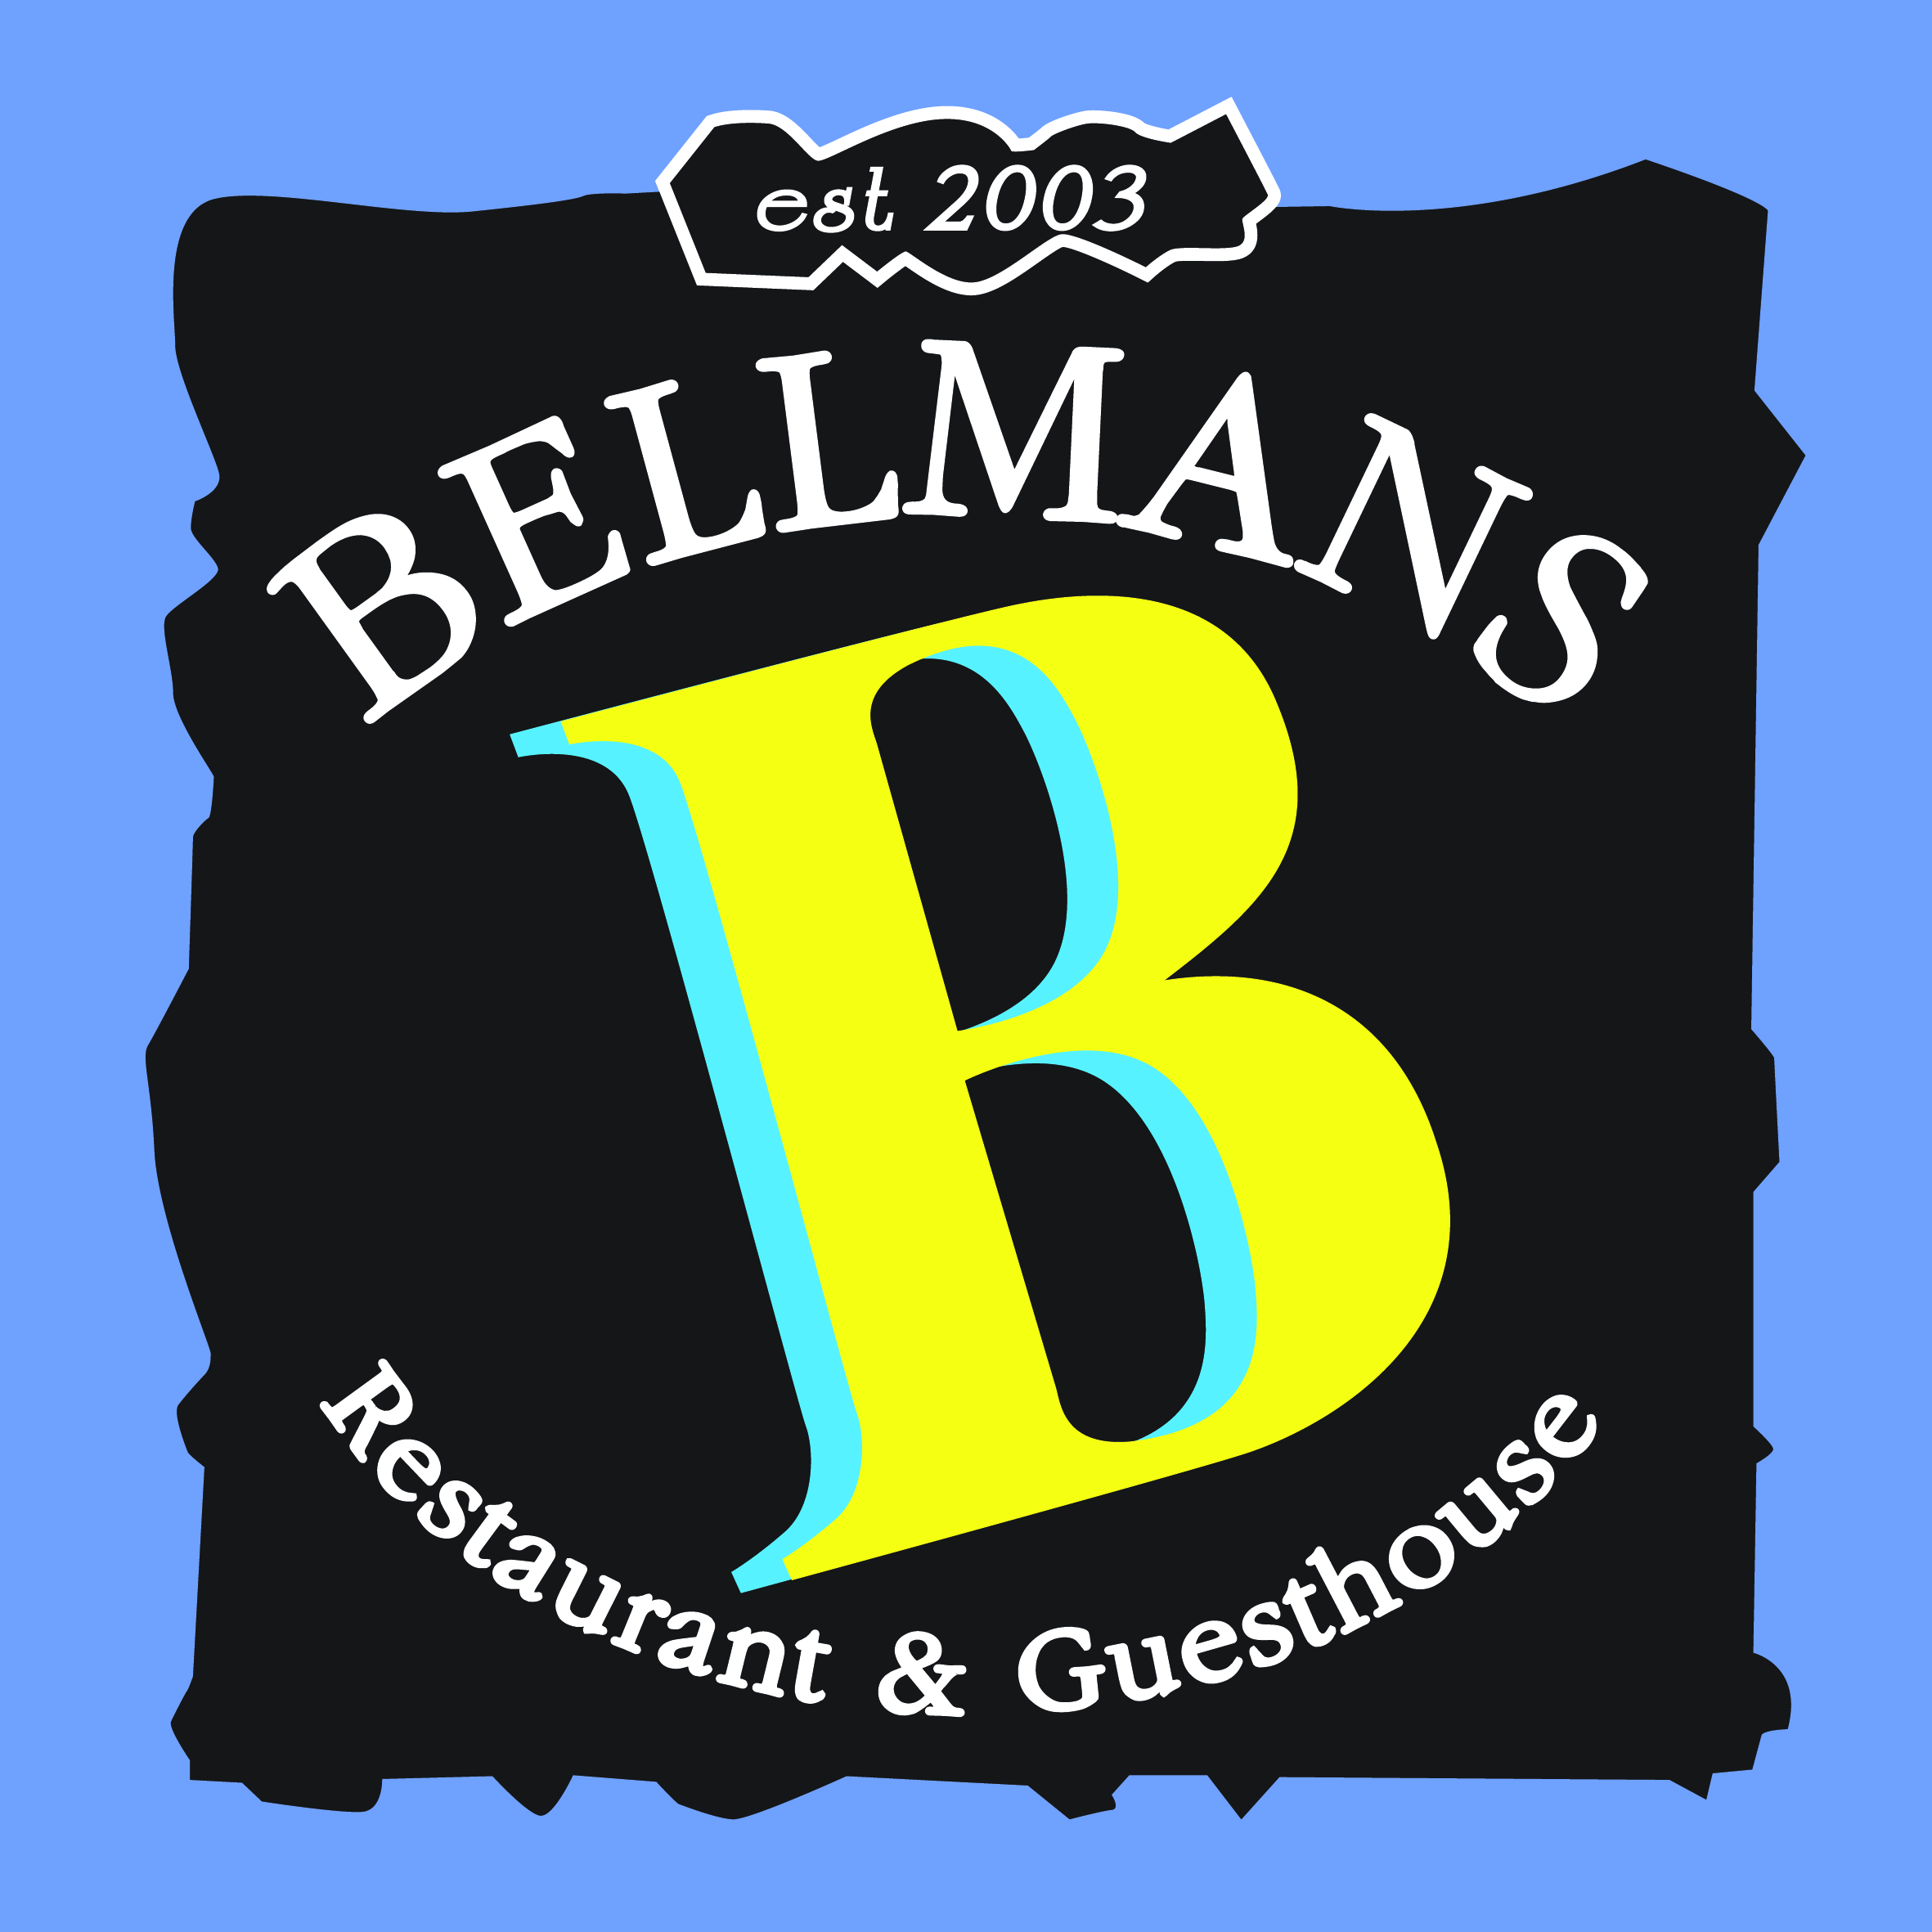 Bellmans Restaurant & Guesthouse